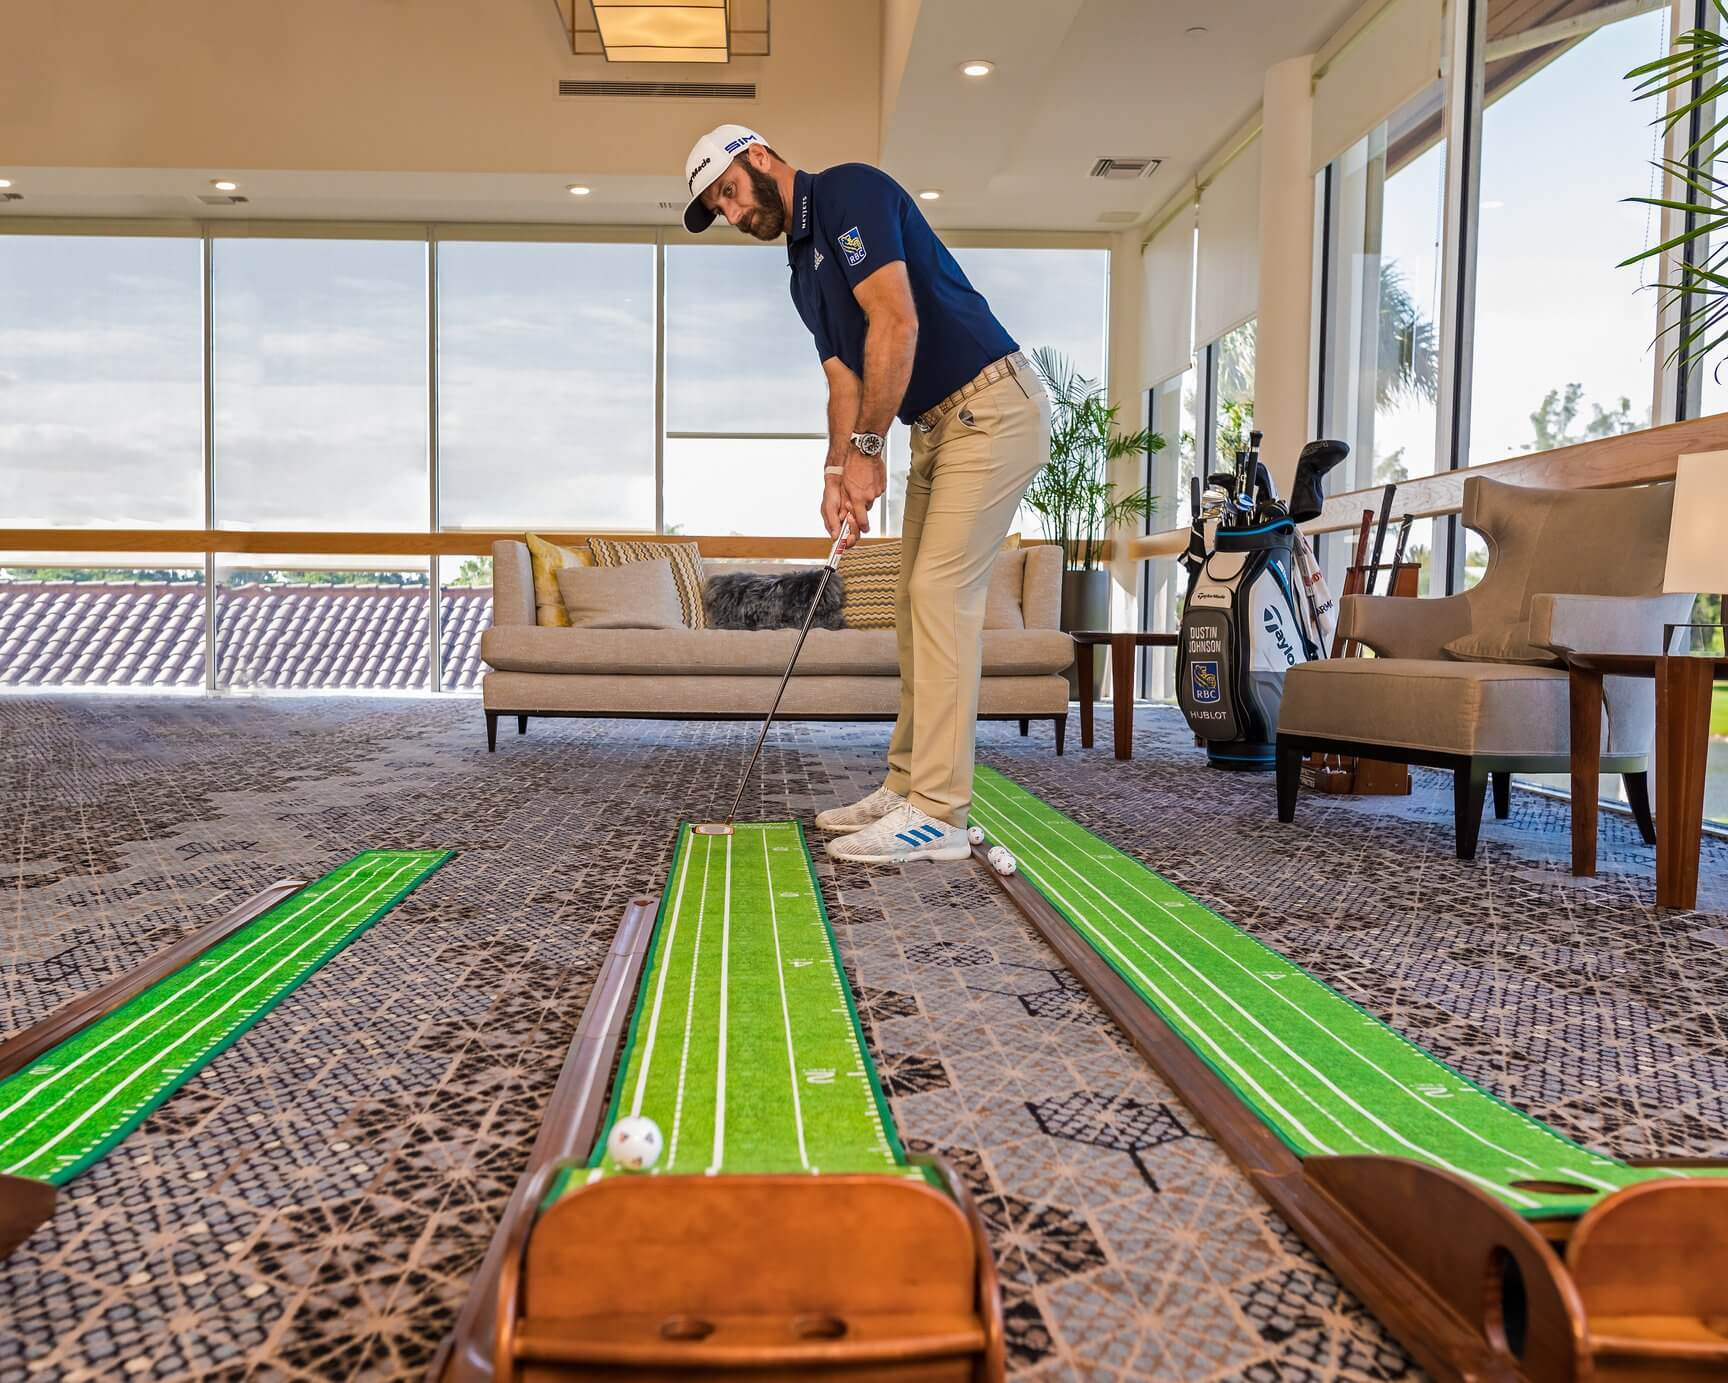 How to Get Better at Golf - Perfect Practice Putting Mat